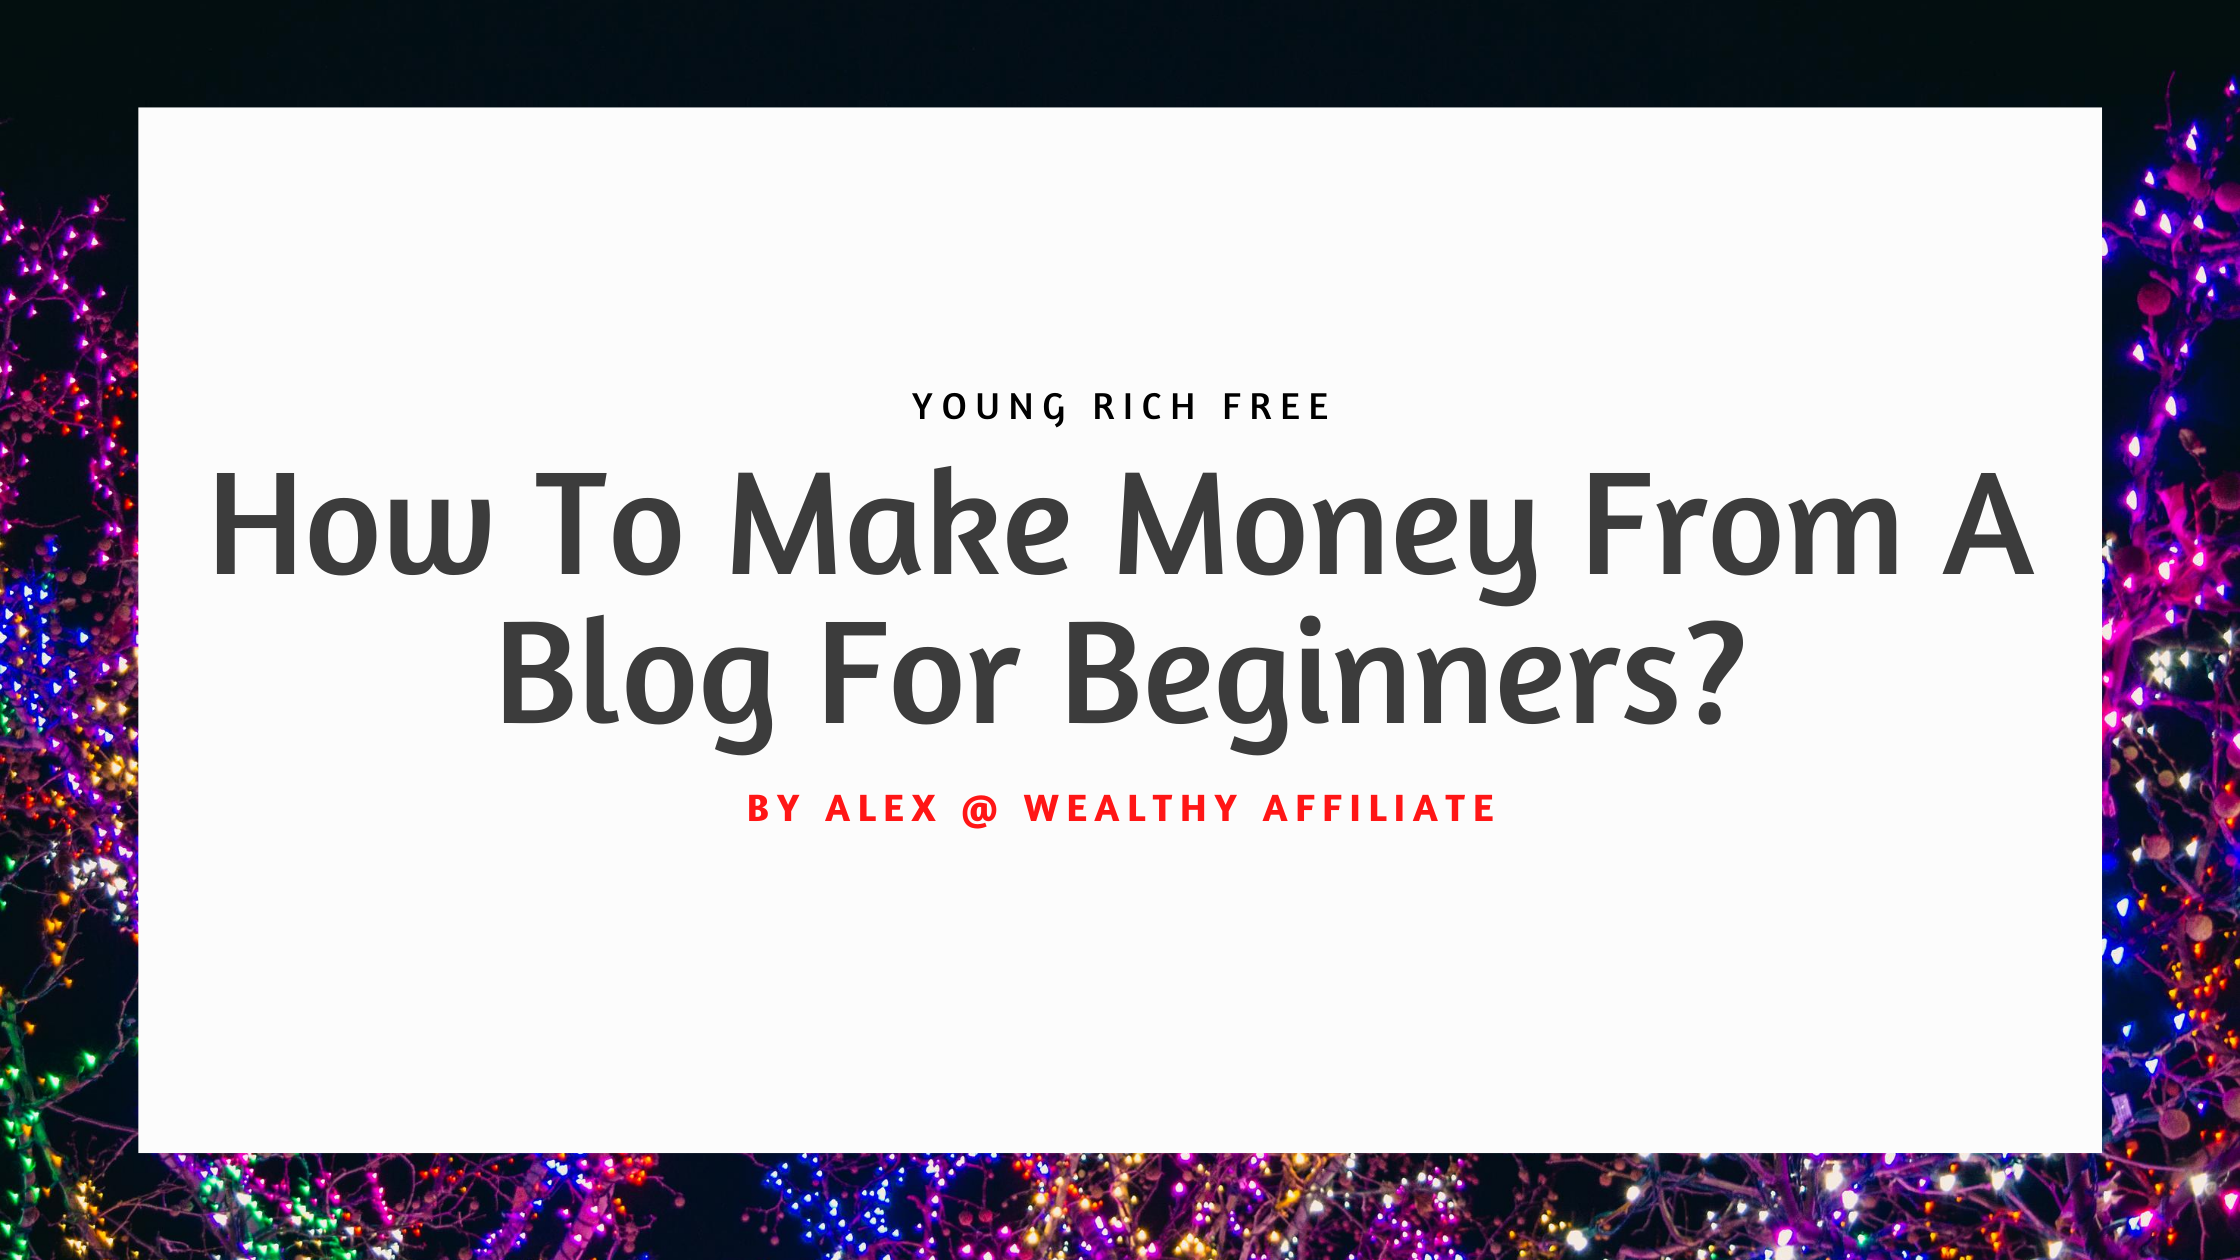 How To Make Money From A Blog For Beginners